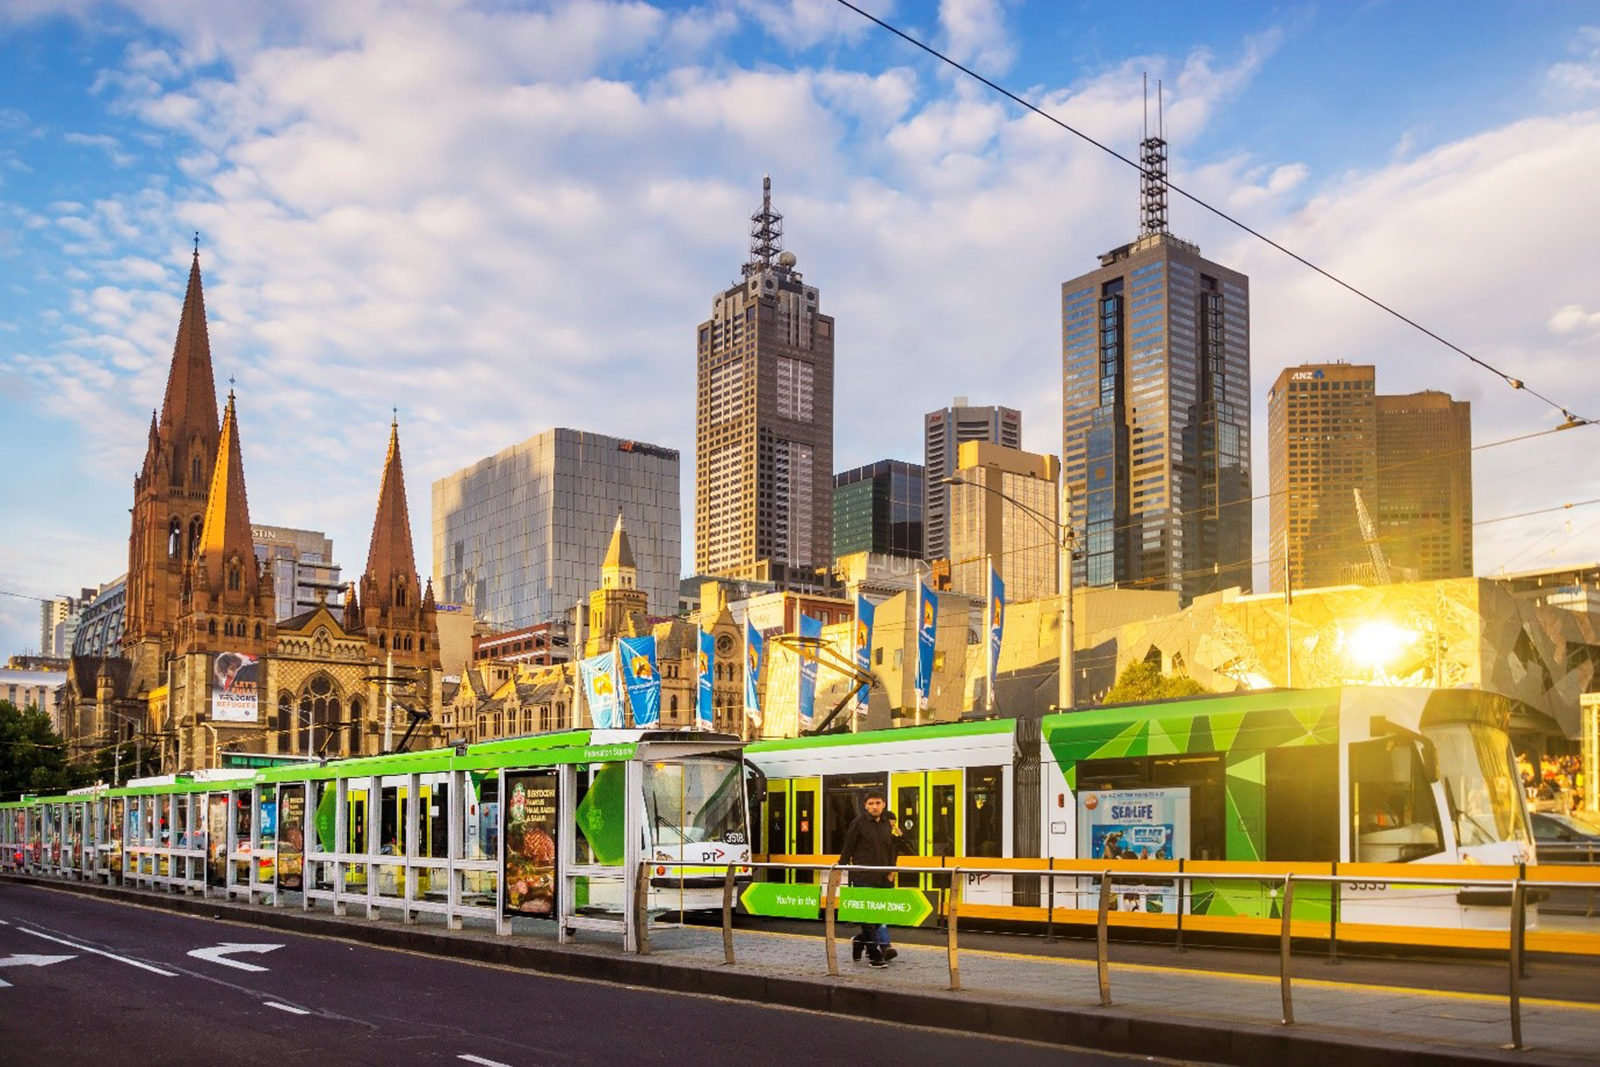 Melbourne city with trams